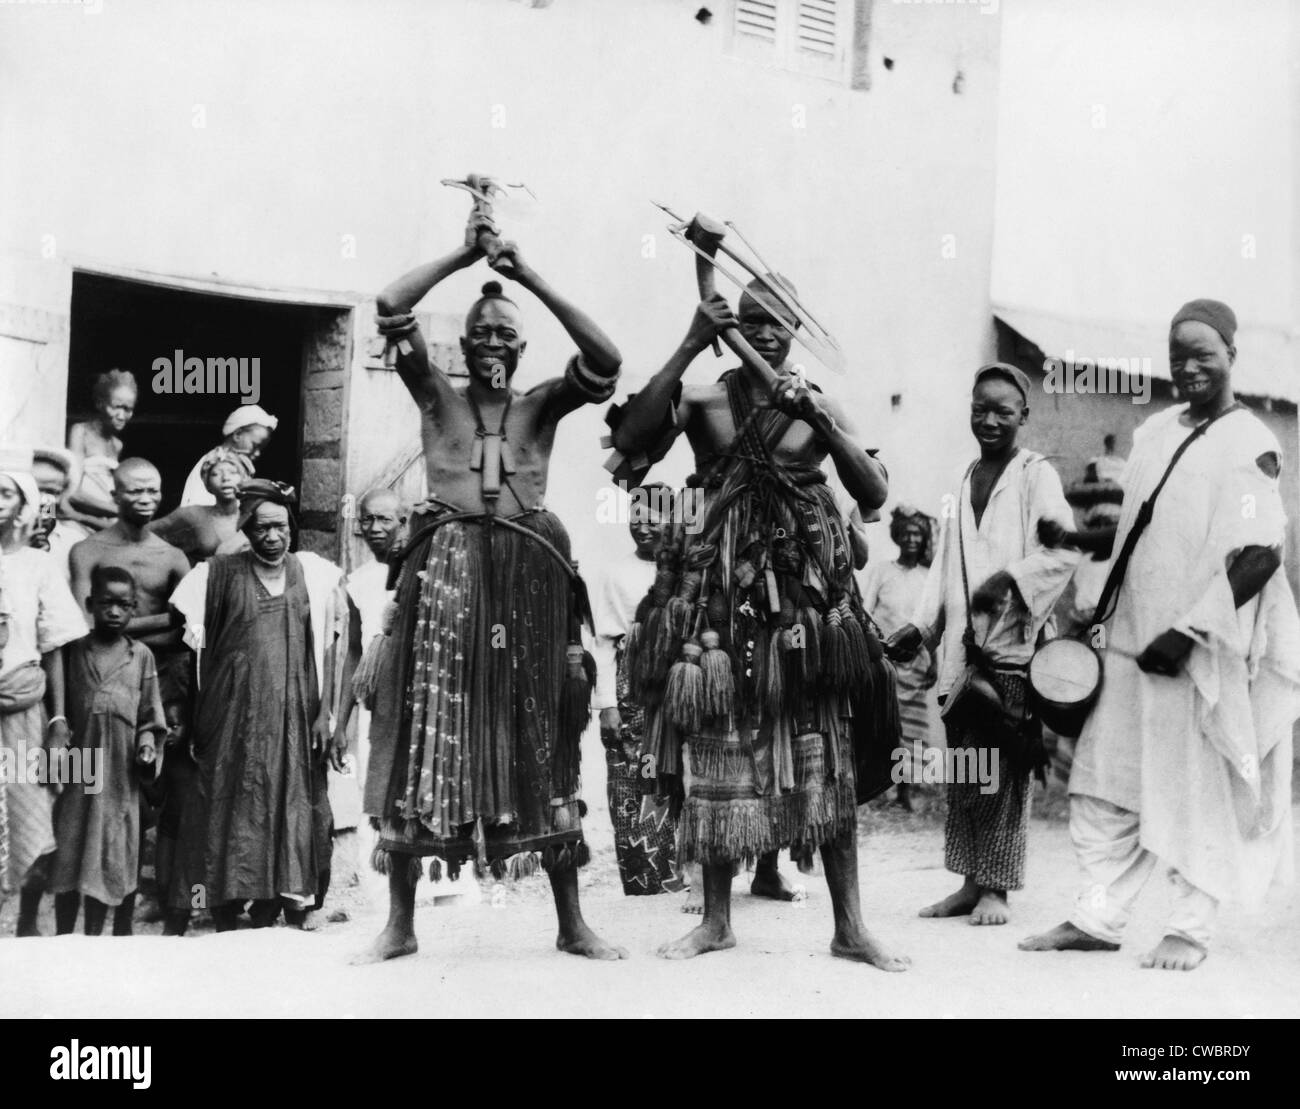 Two itinerant medicine men on a street in the village of Abeokuta, Southern Nigeria. Performing a 'hoe dance' - Stock Image